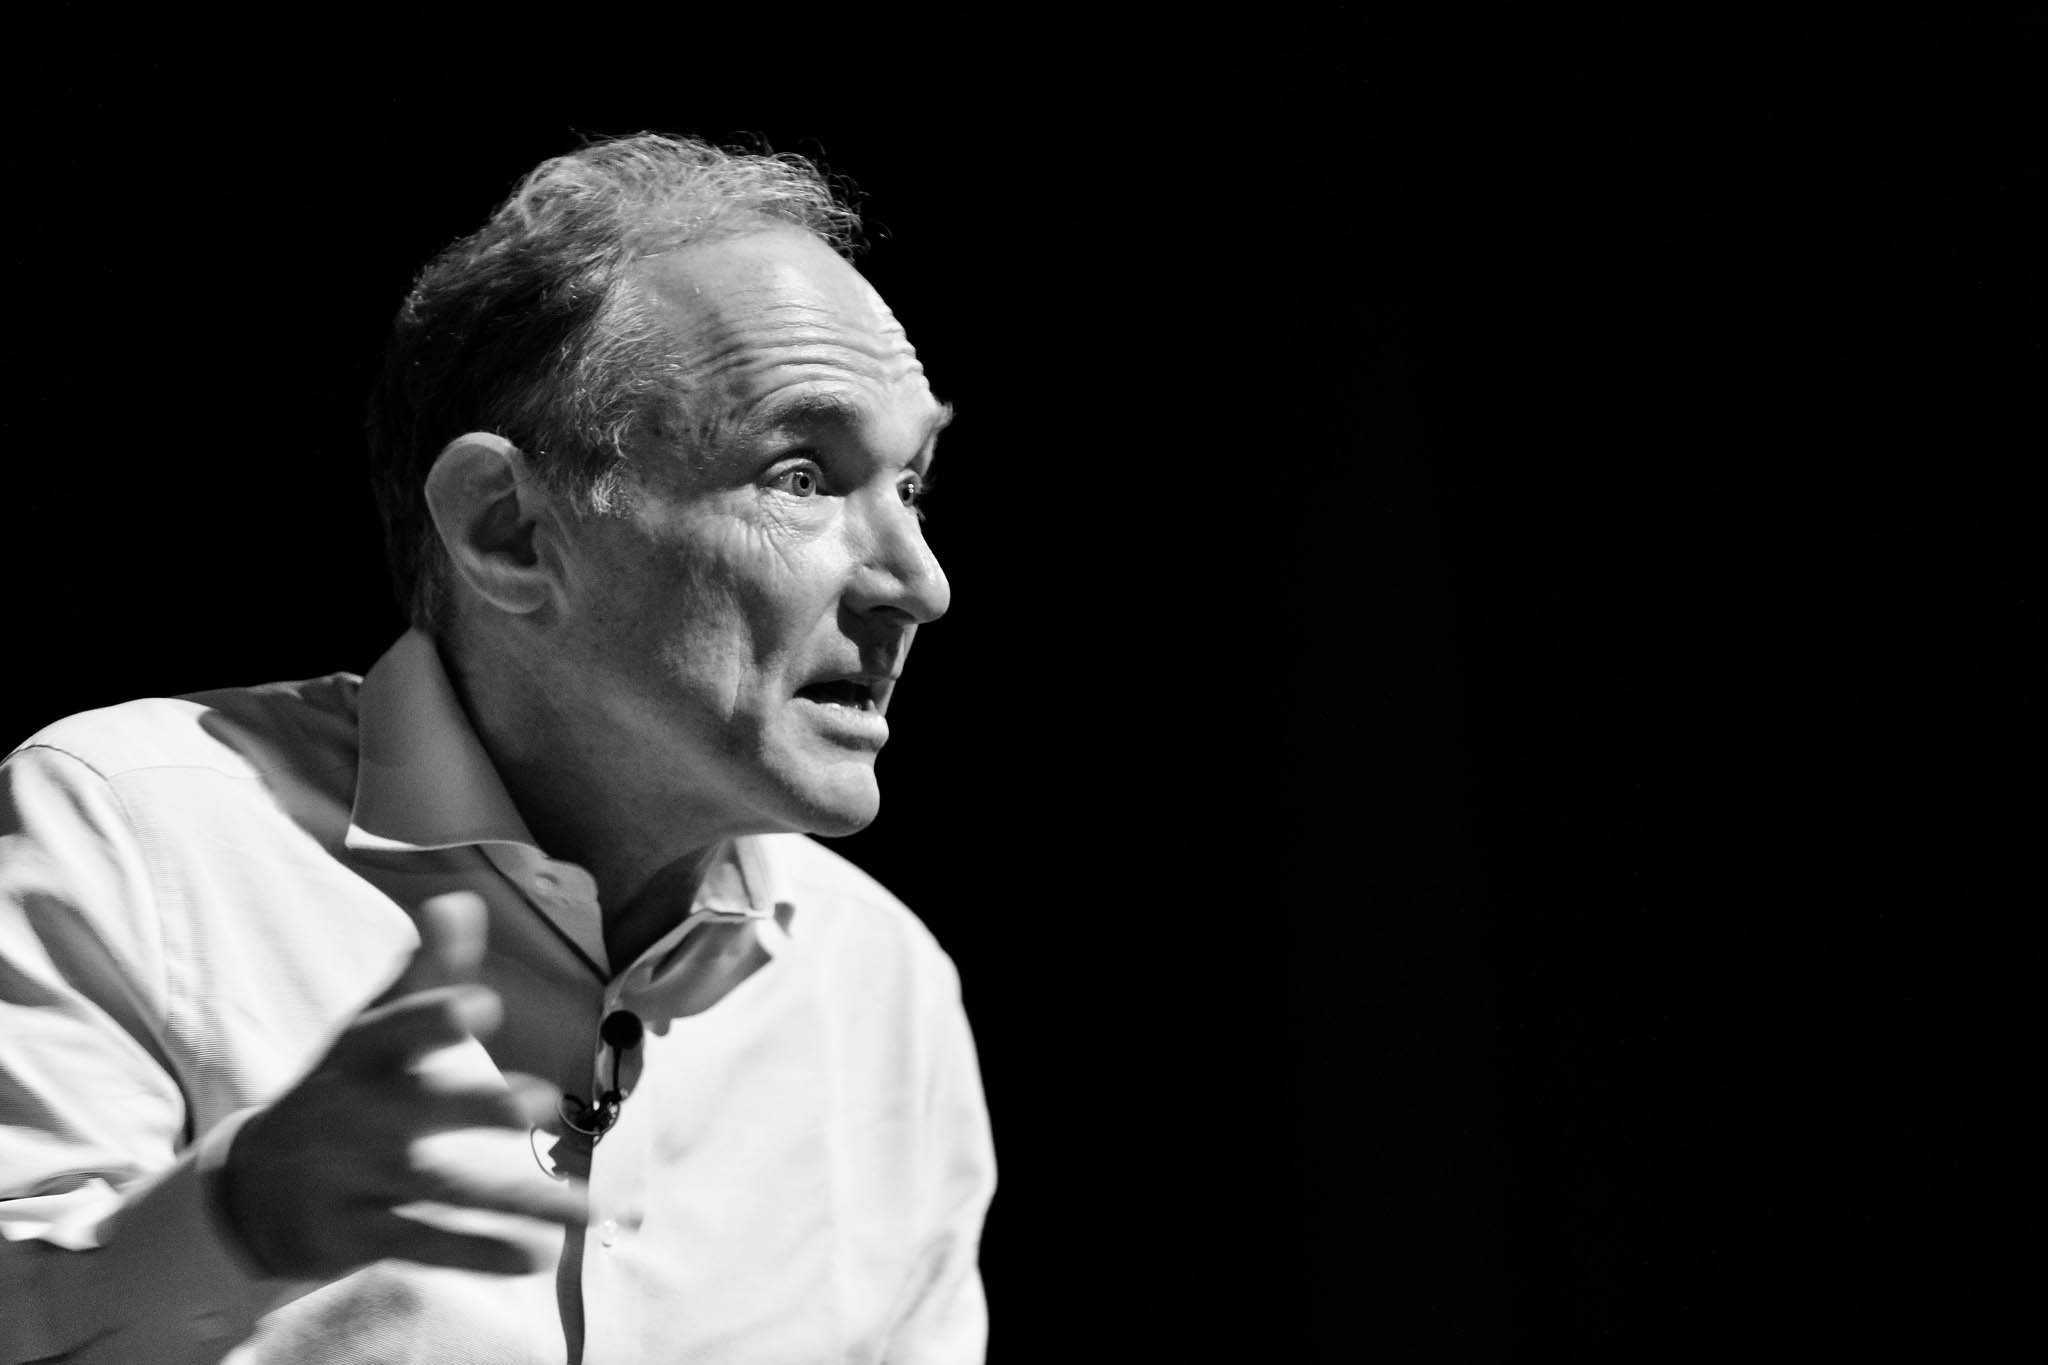 46-november-tim-berners-lee